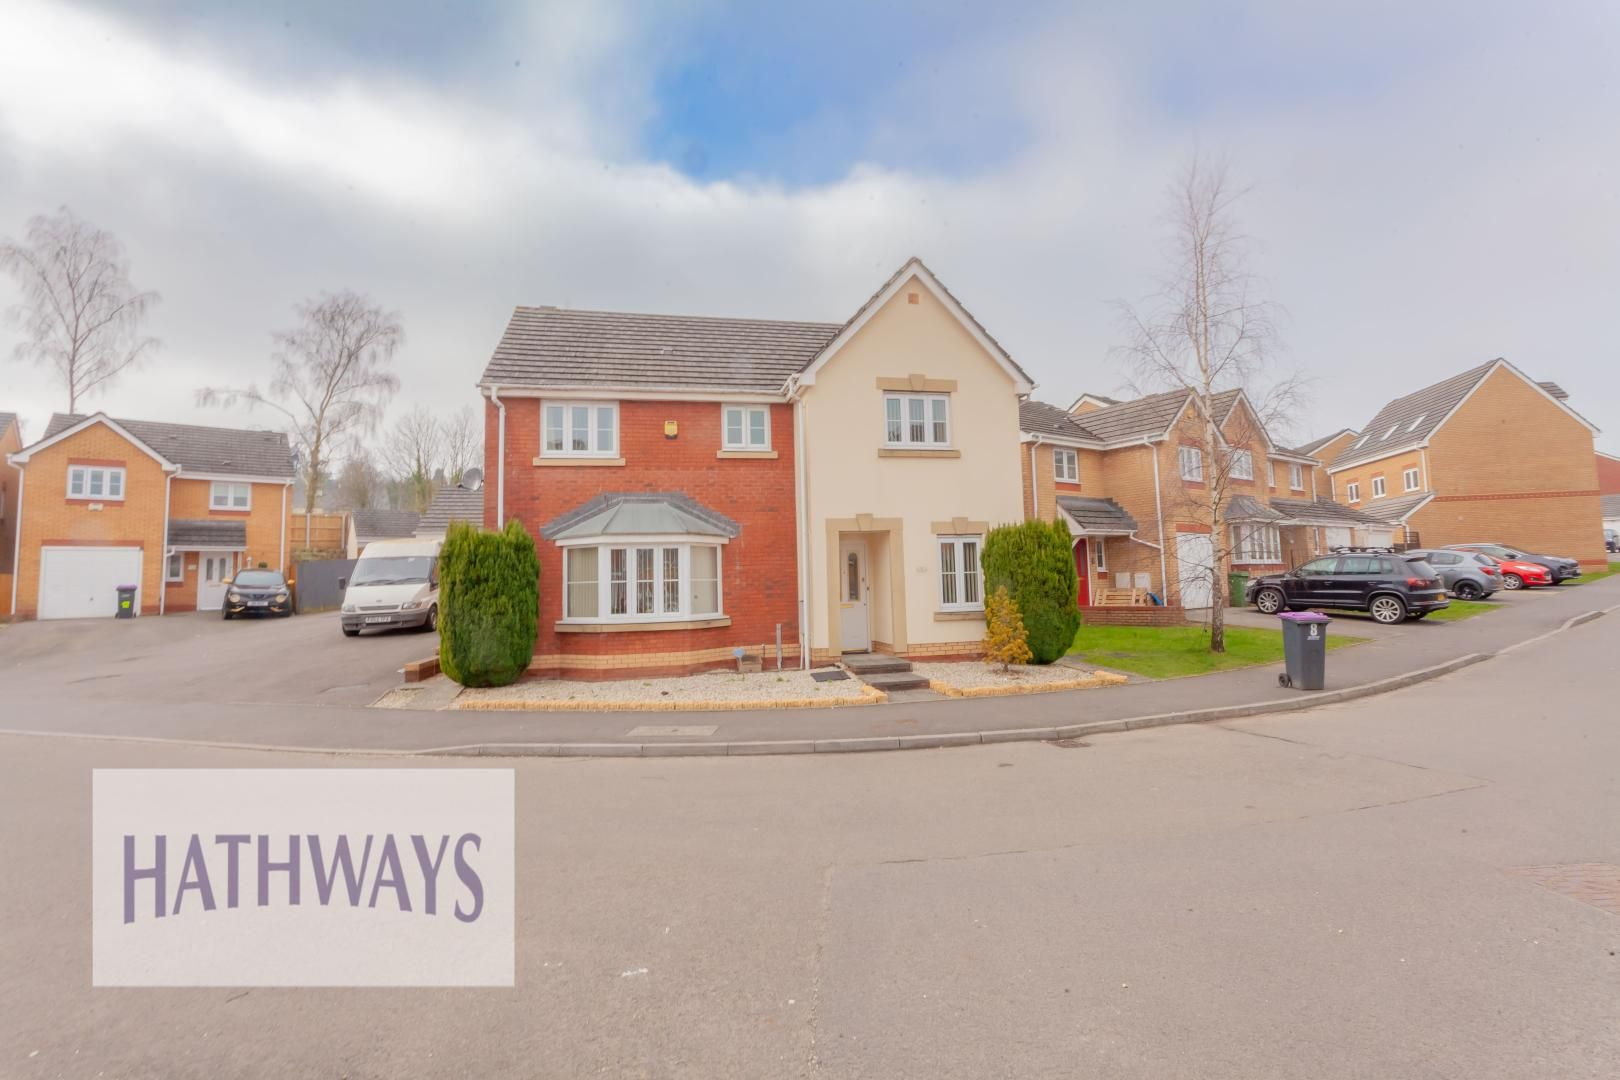 4 bed house for sale in Churchwood, NP4